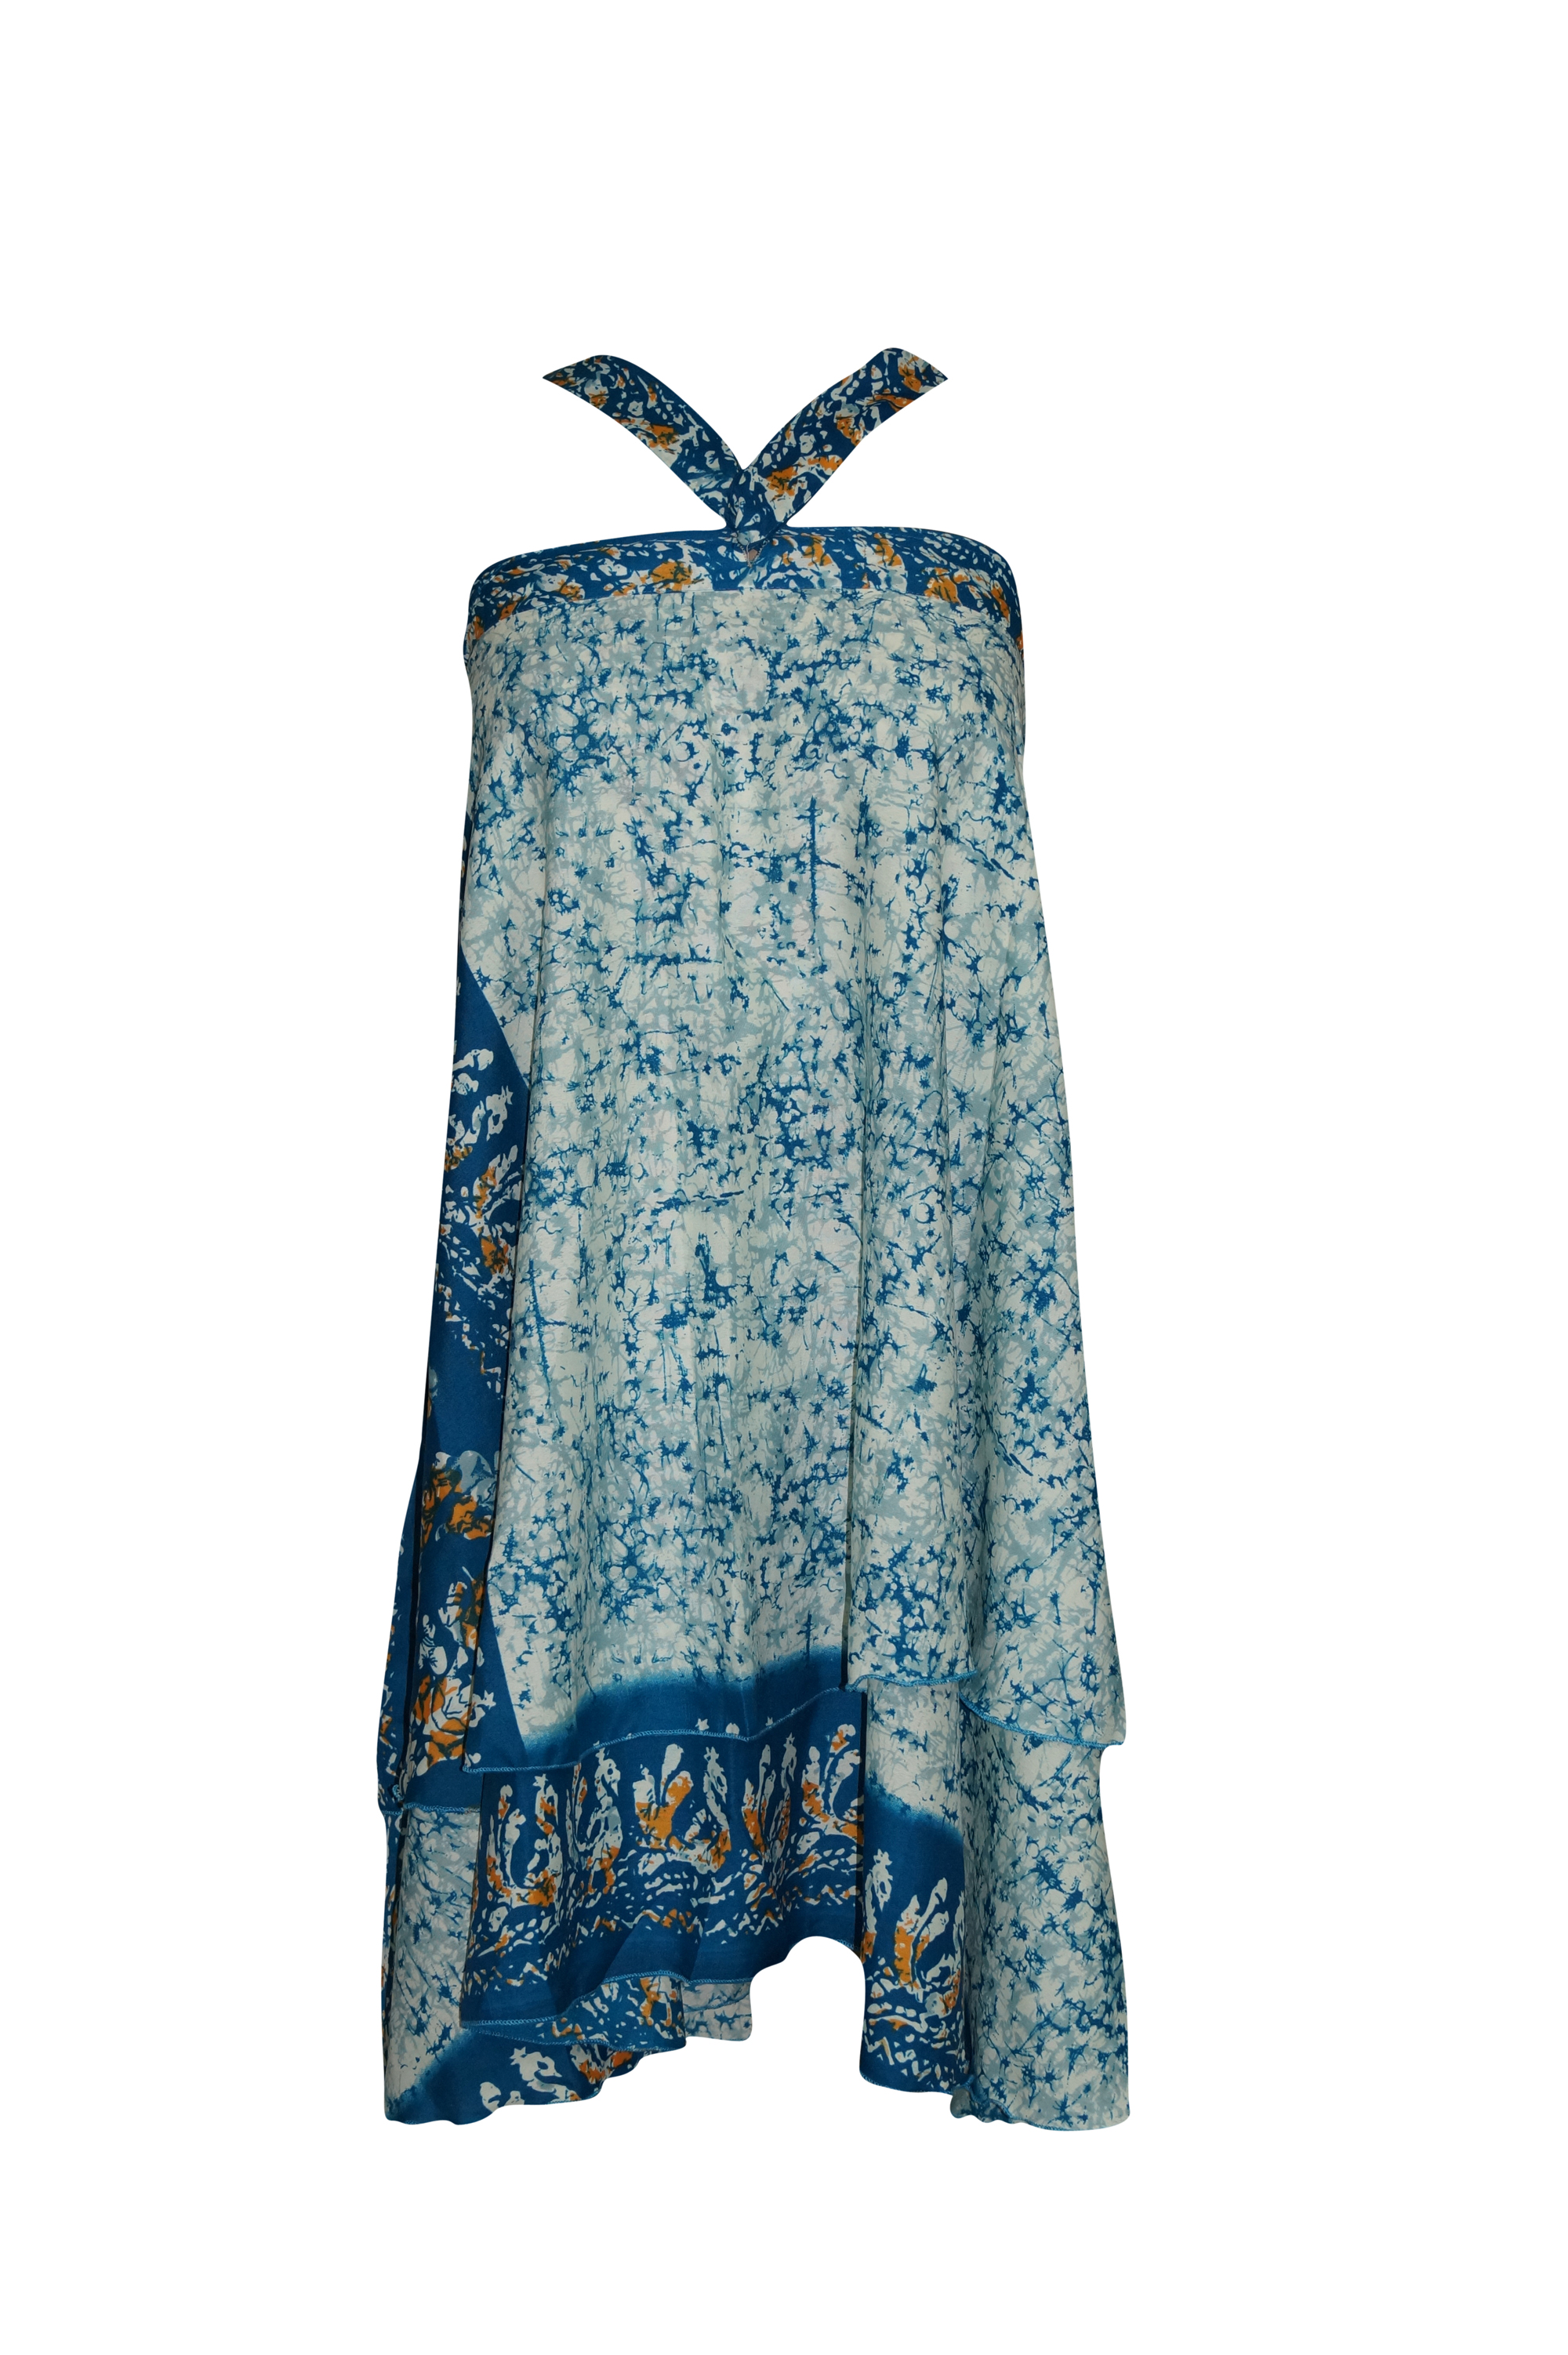 Multi Tiered Recycled Sari Festy Dresses Indian Decor